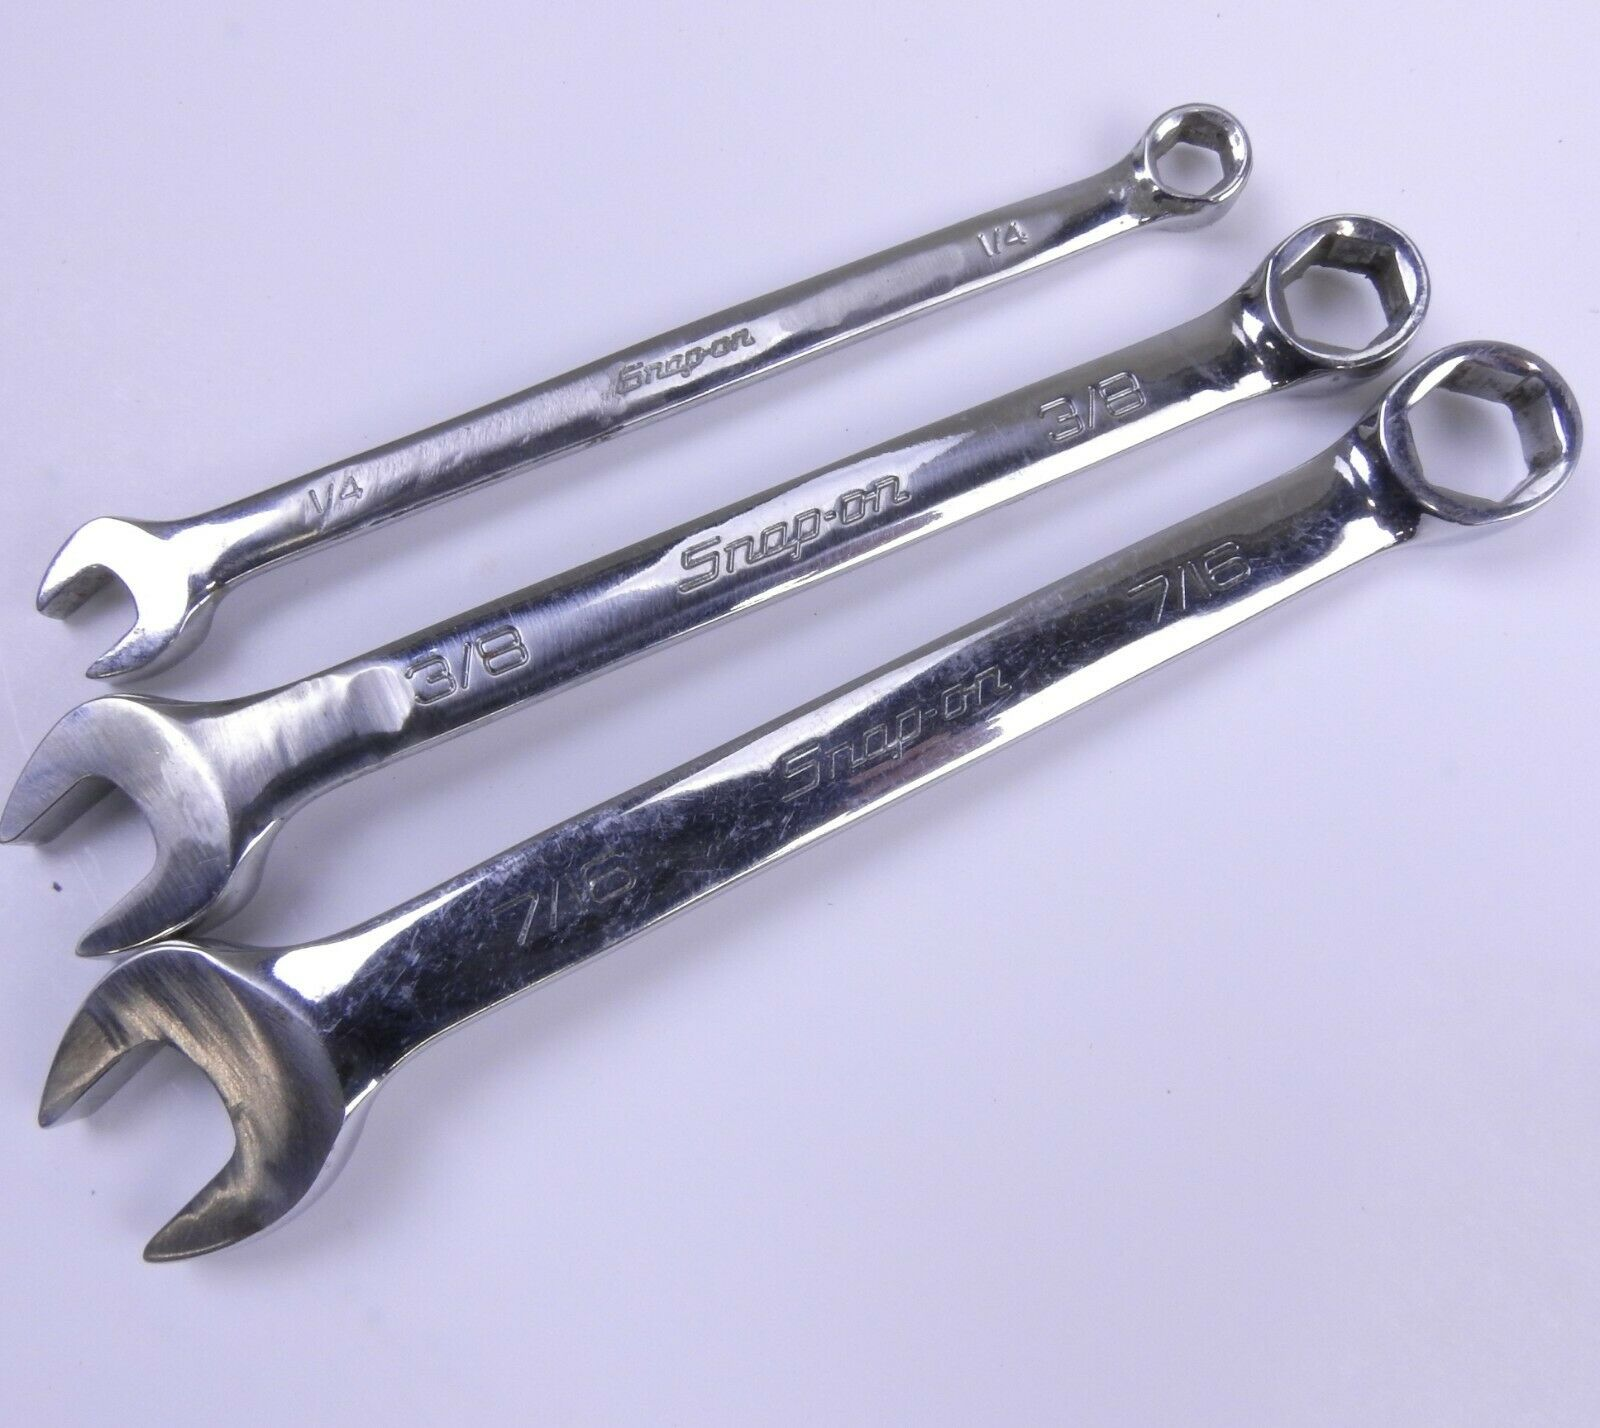 Snap-on 6pt combination wrench set 3Pcs